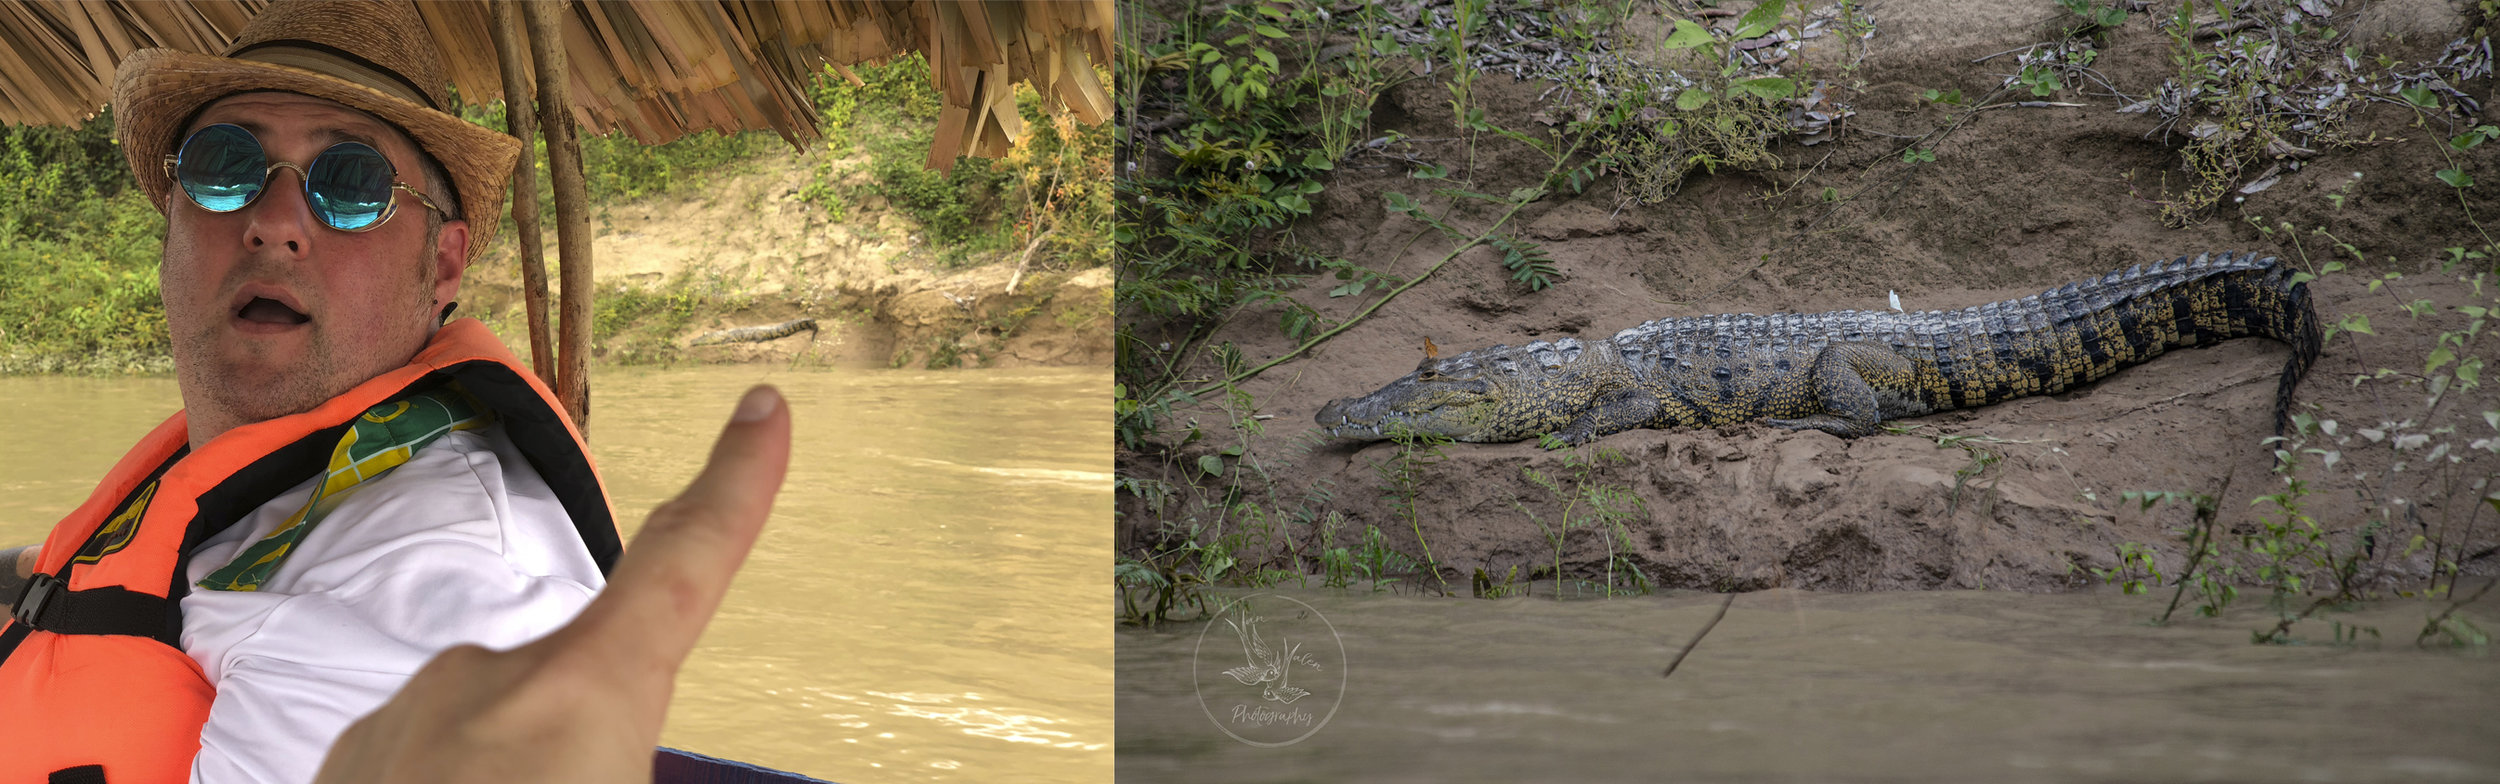 crocodiles on the Usumacinta River, notice the butterflies perched on the beast (the croc, not my husband)